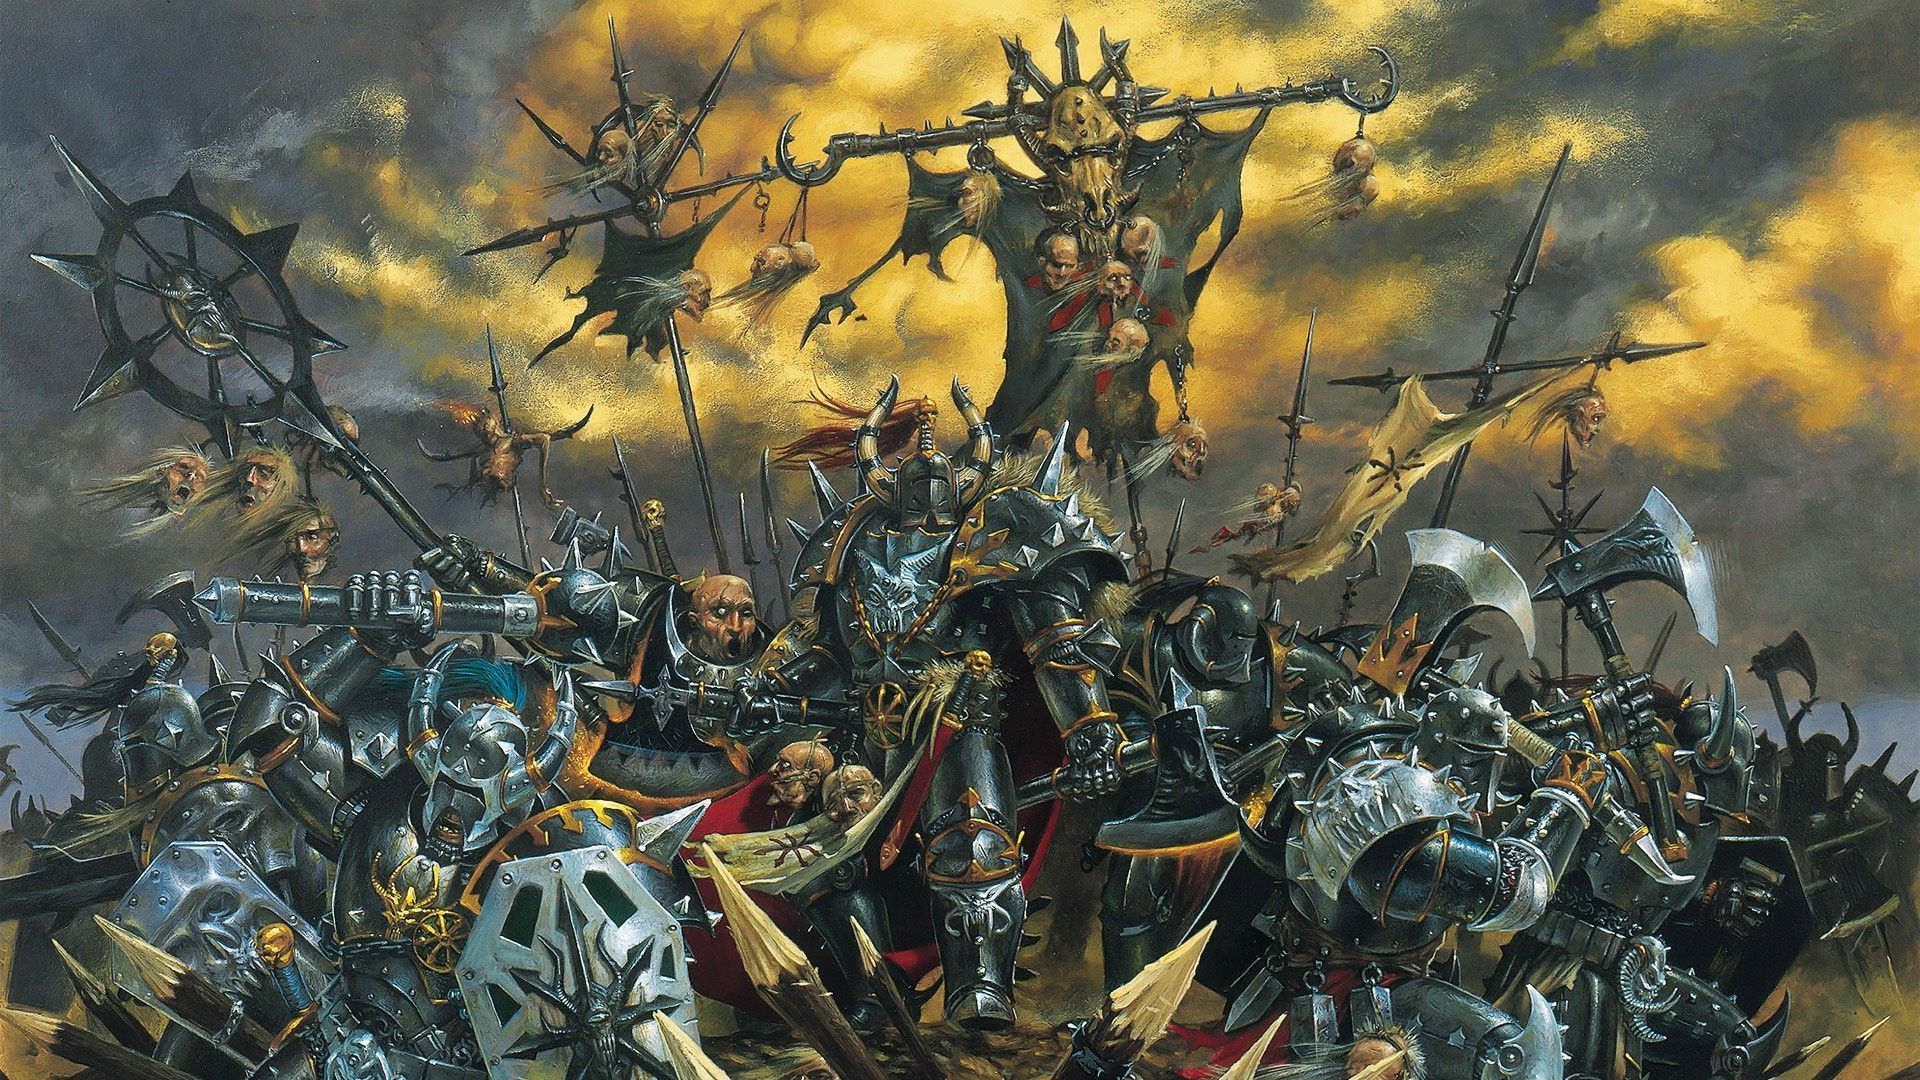 rate 0 tweet 1920x1080 games warhammer chaos resolution 1920x1080 1920x1080